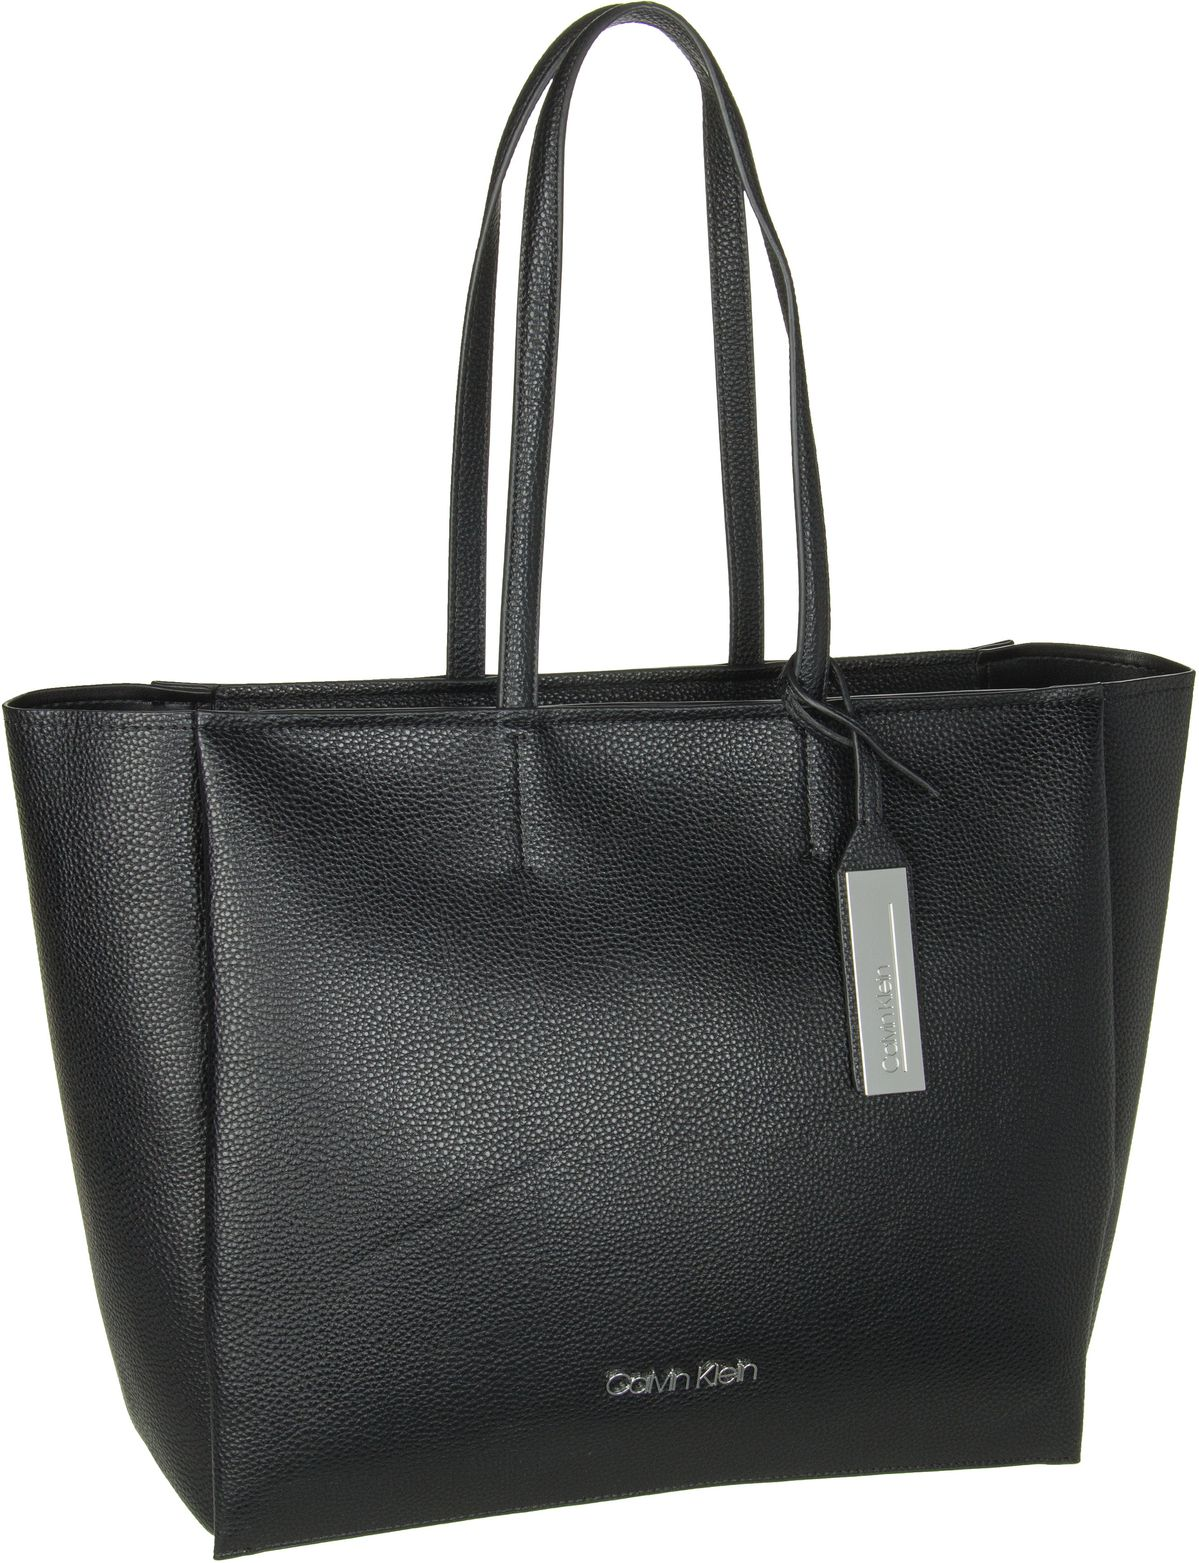 Calvin Klein Shopper Sided Shopper Black